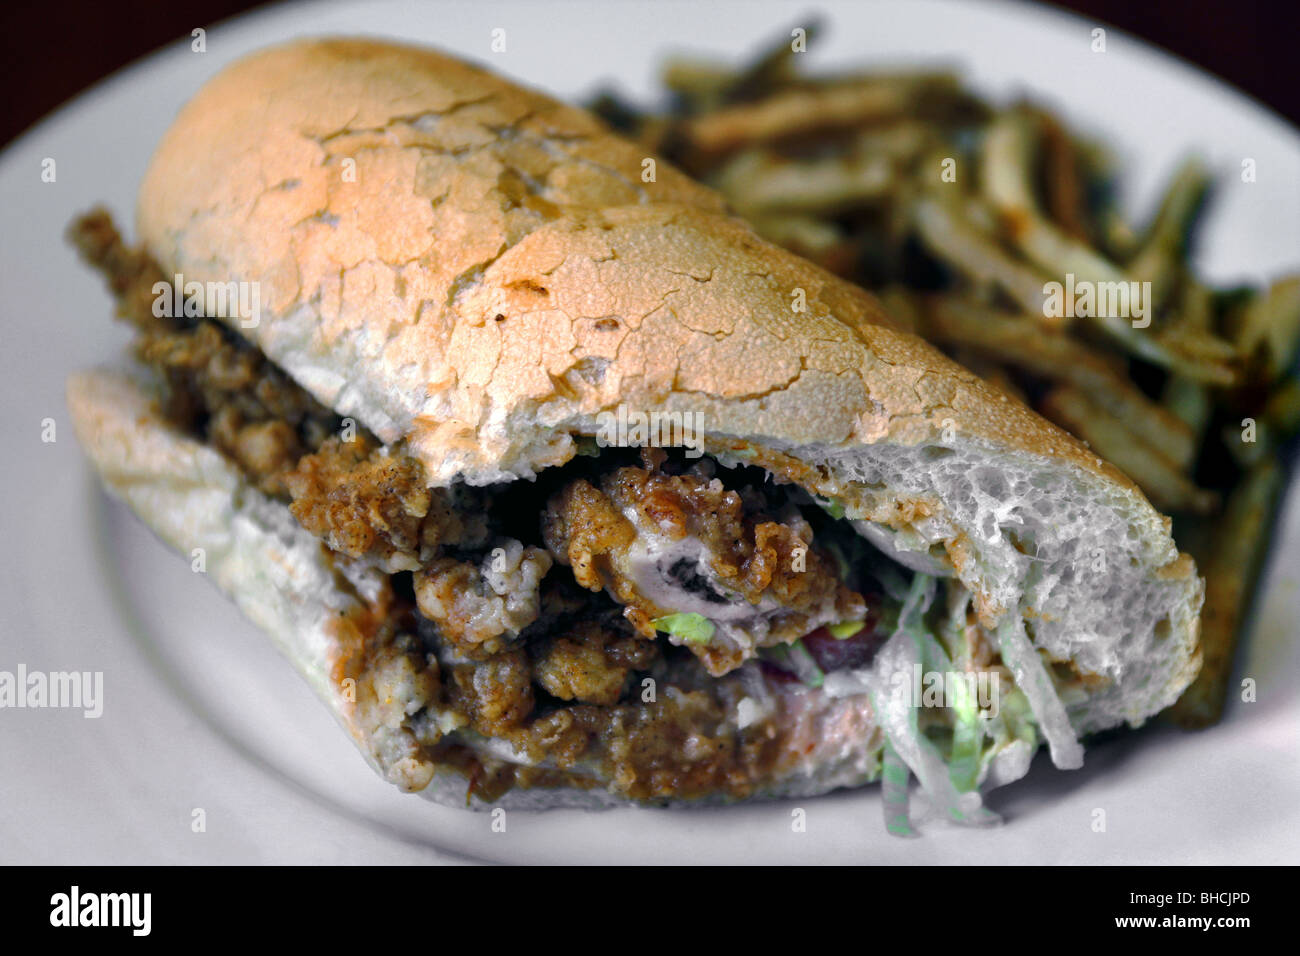 Fried Oyster Po-Boy Sandwich, New Orleans, Louisiana, USA Stockbild